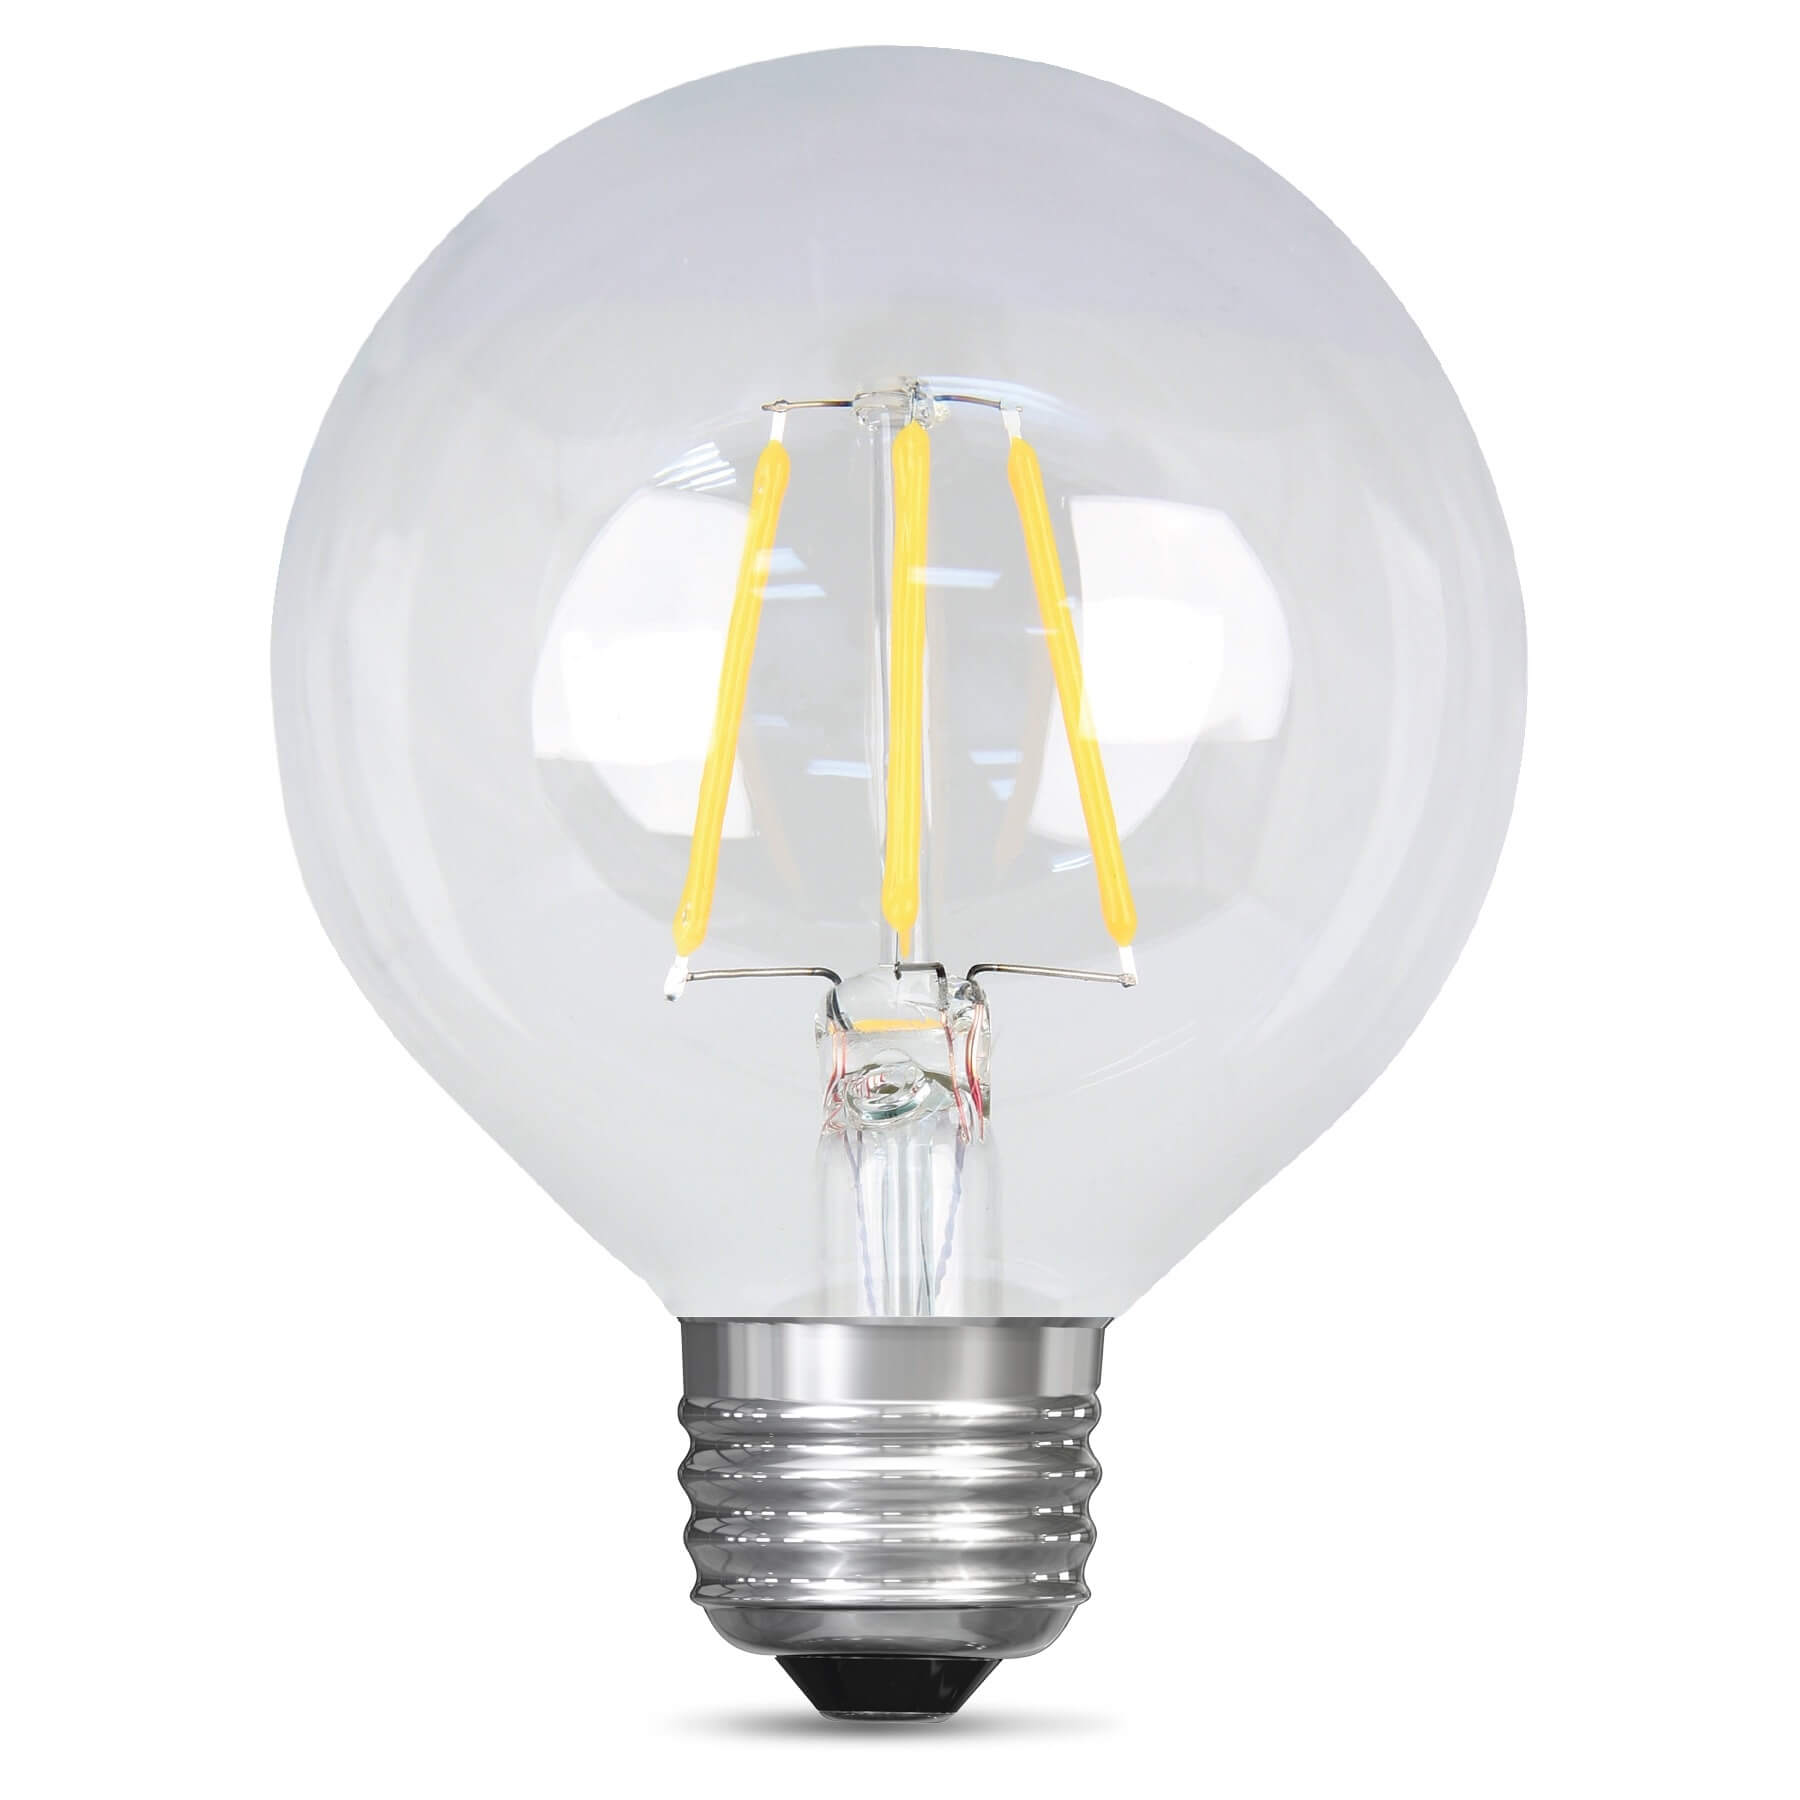 300 Lumen 5000K Dimmable LED - Feit Electric